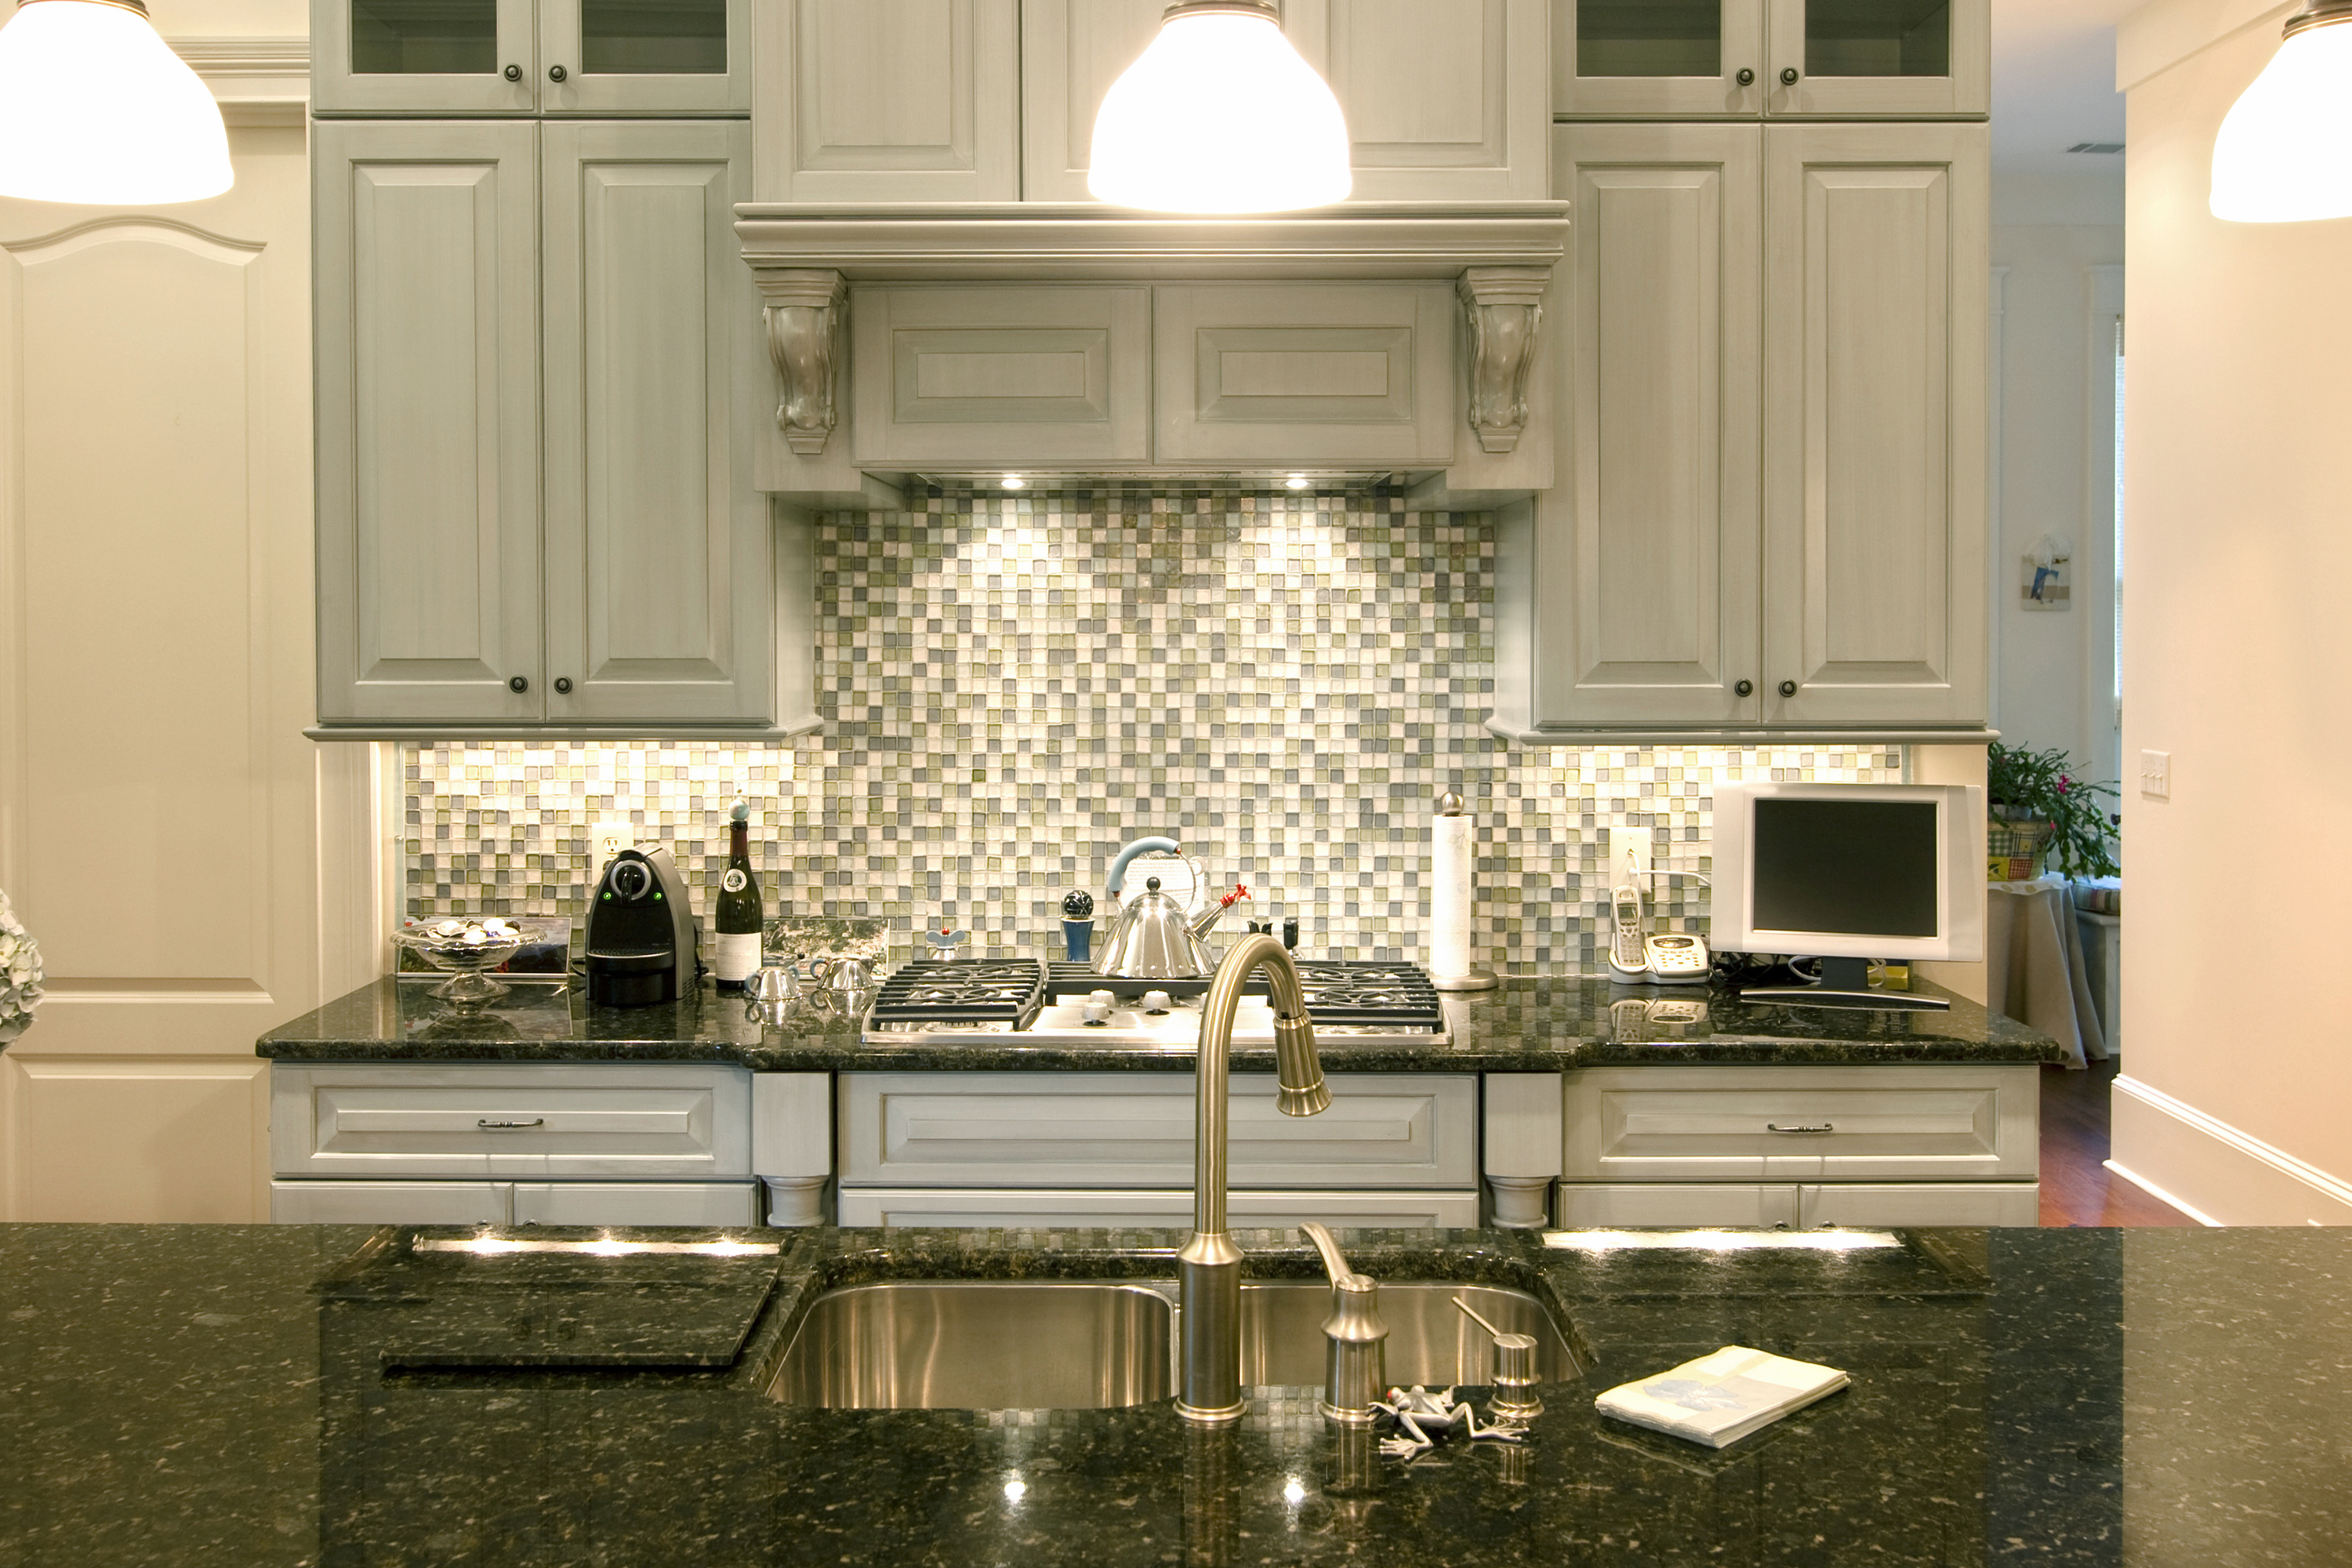 The best backsplash ideas for black granite countertops for Black kitchen backsplash ideas